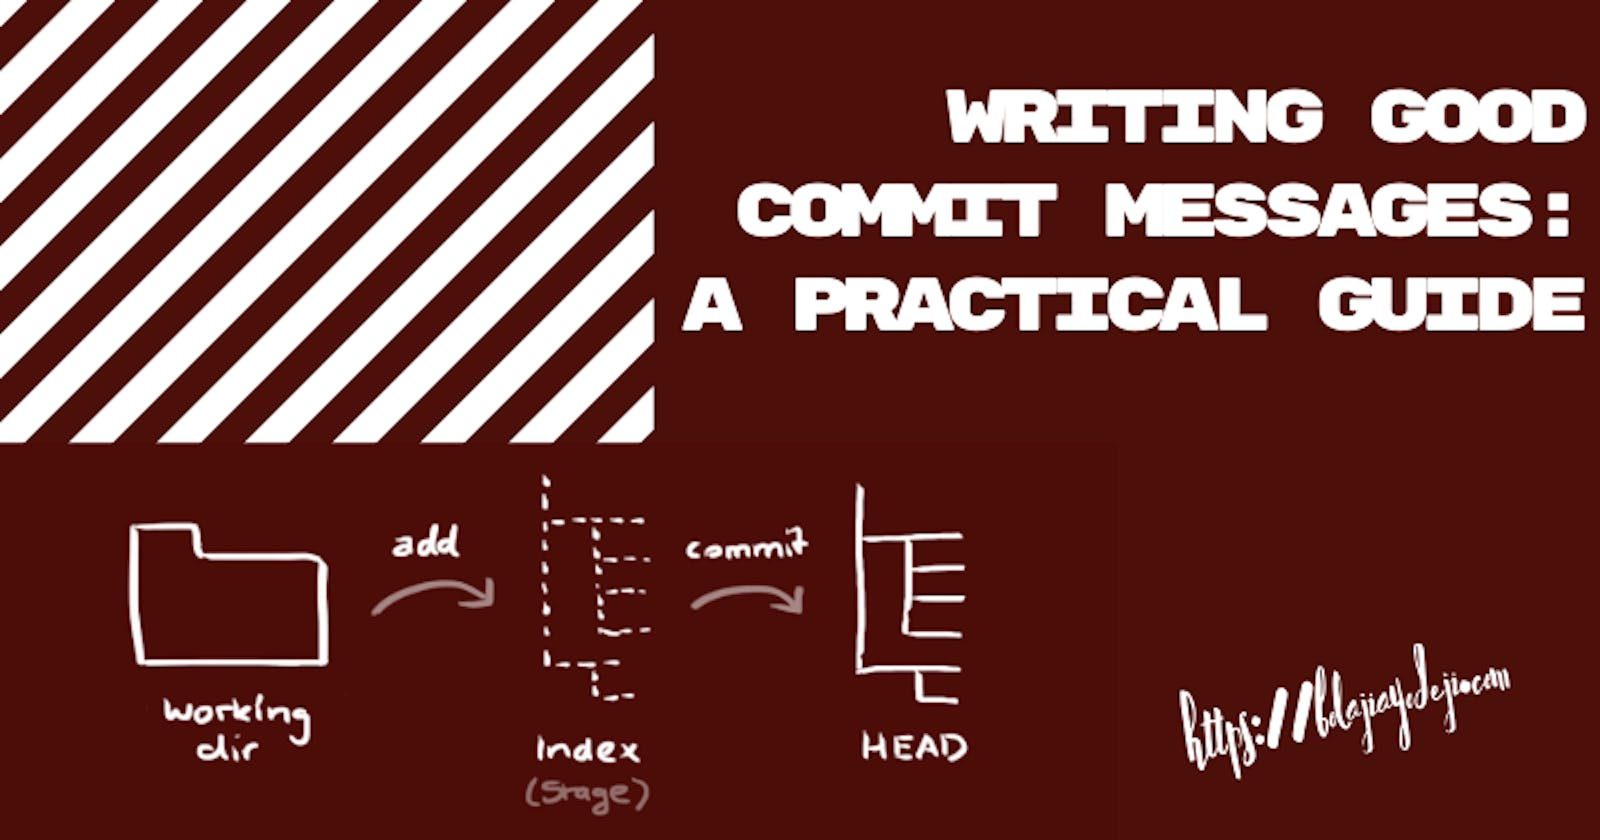 Writing Good Commit Messages: A Practical Guide